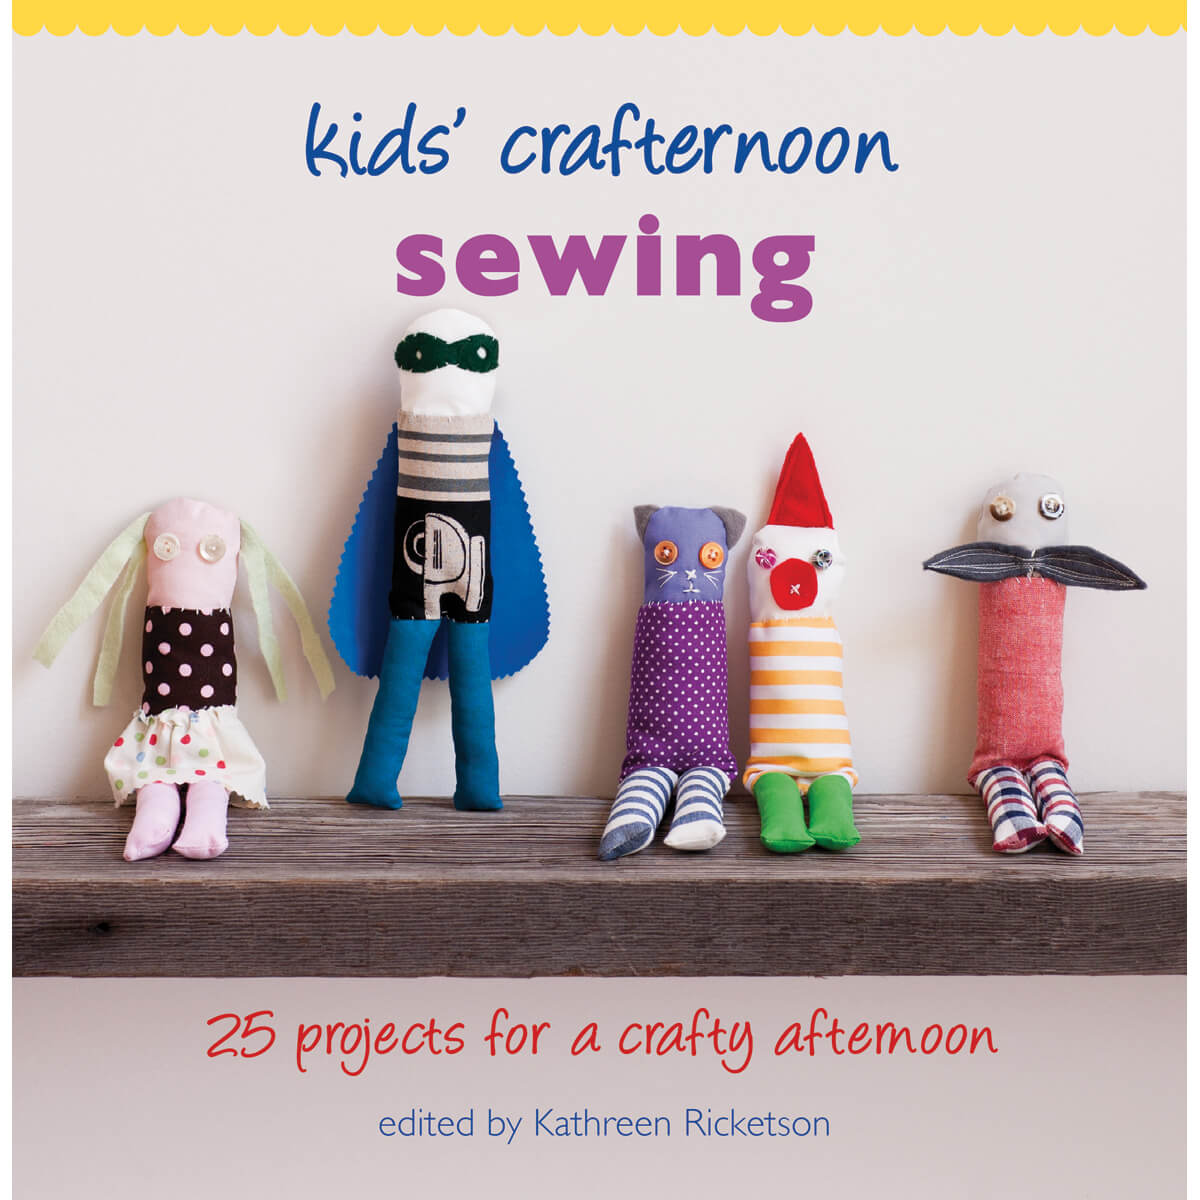 kids crafternoon sewing